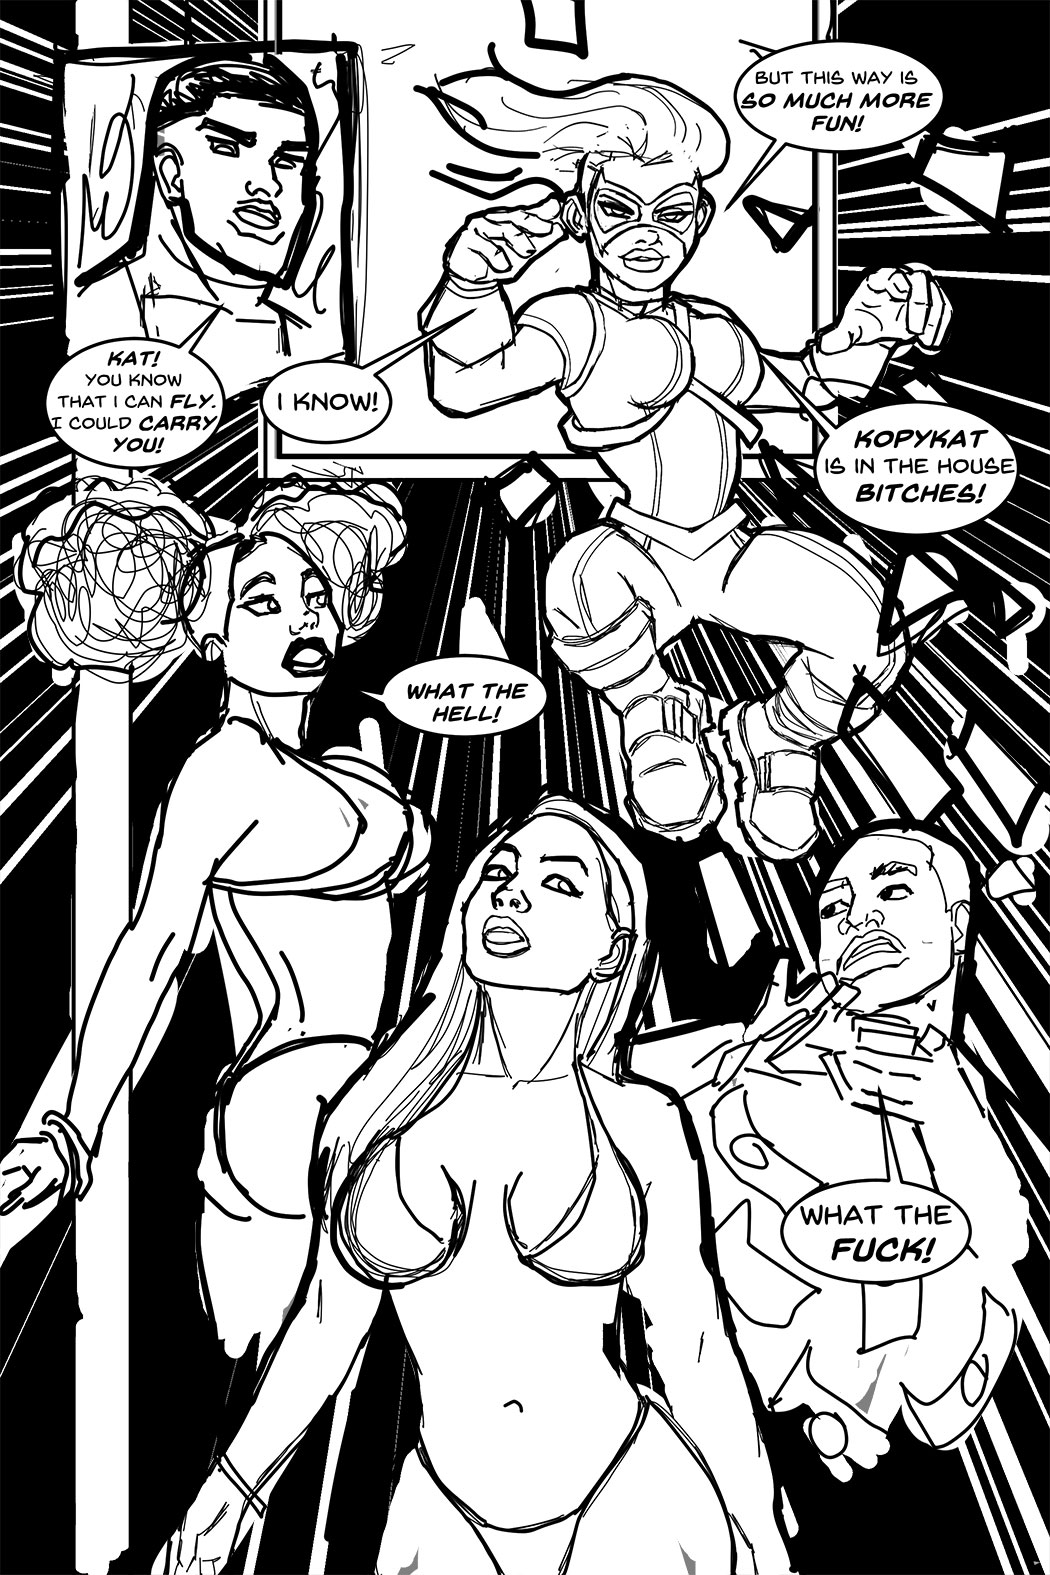 page-5-rework-28-july-2016-2